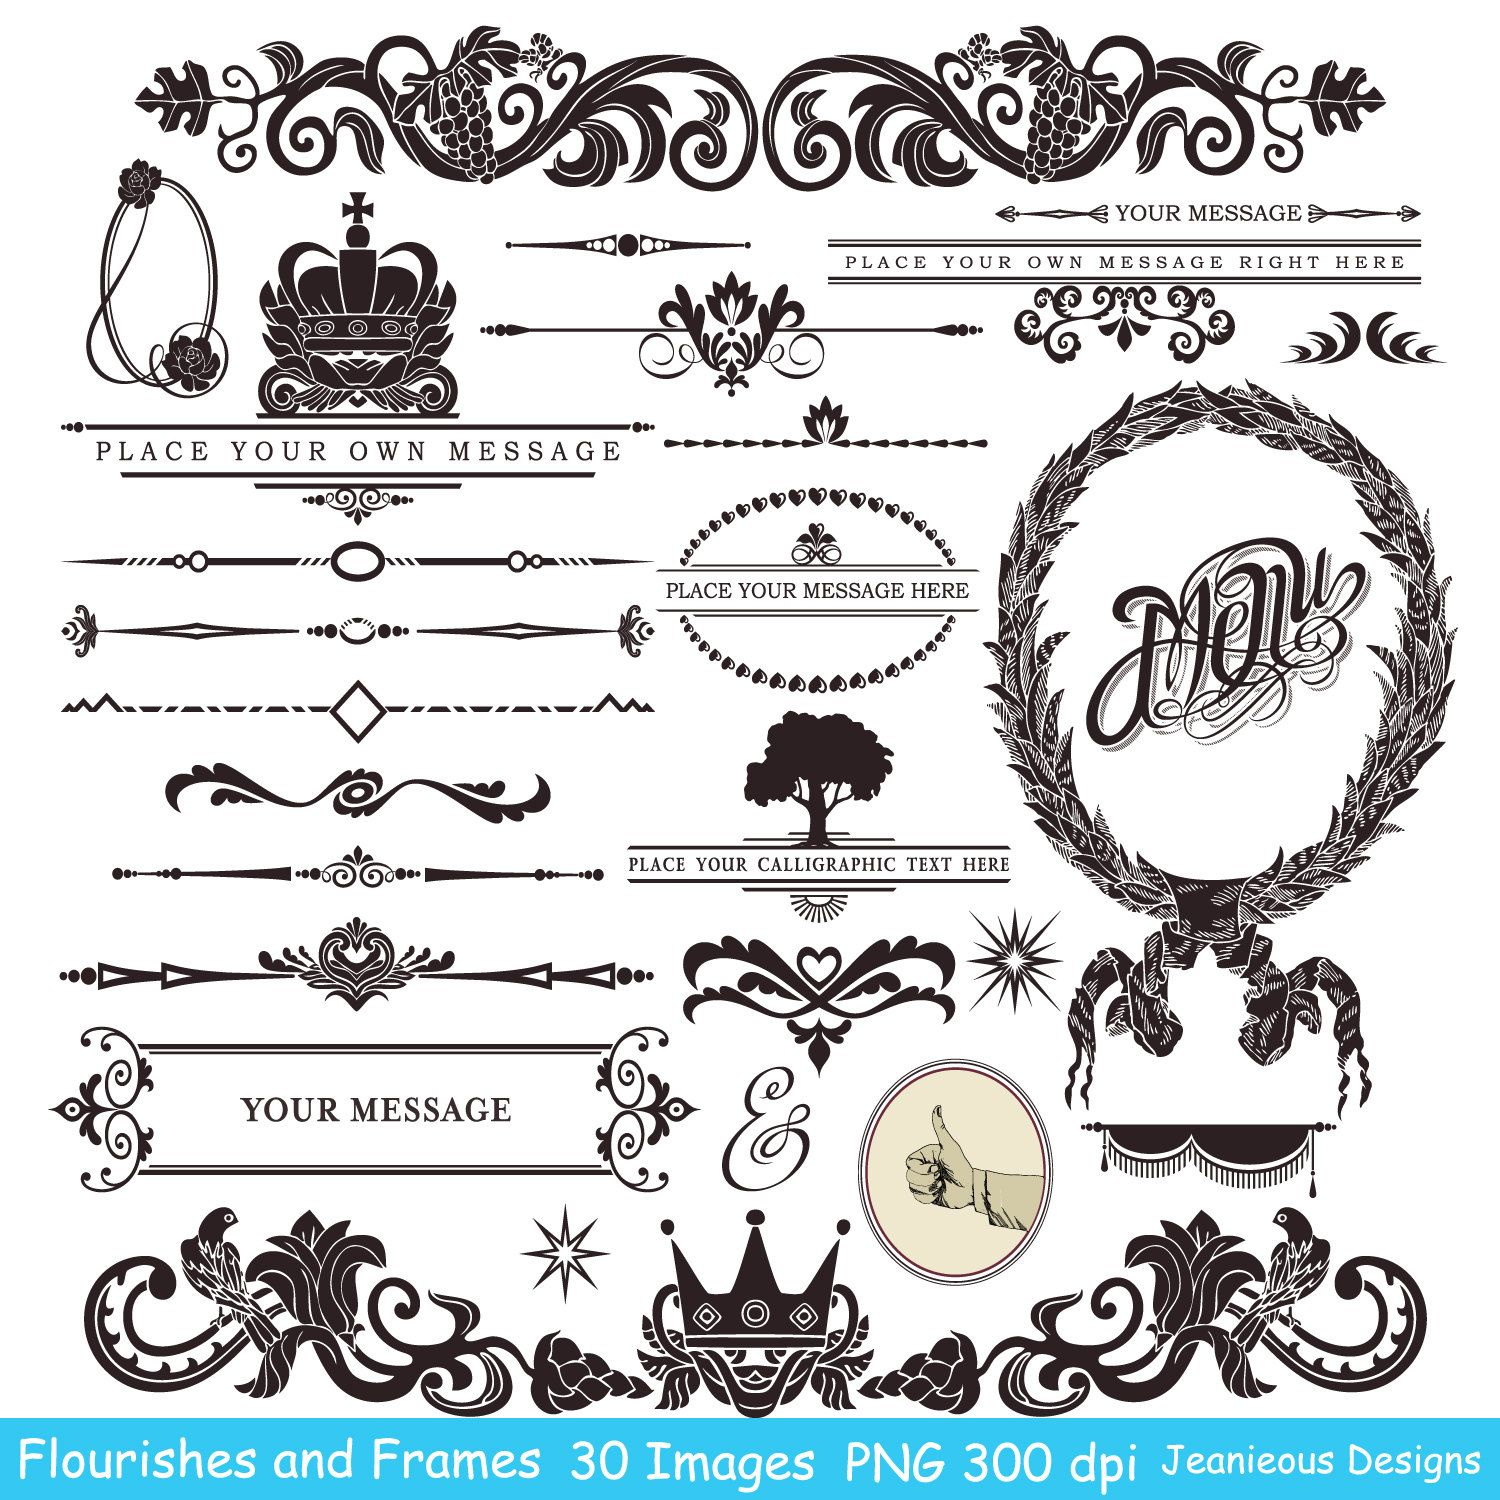 Vintage Calligraphy Clip art Design Style Elements Wedding.